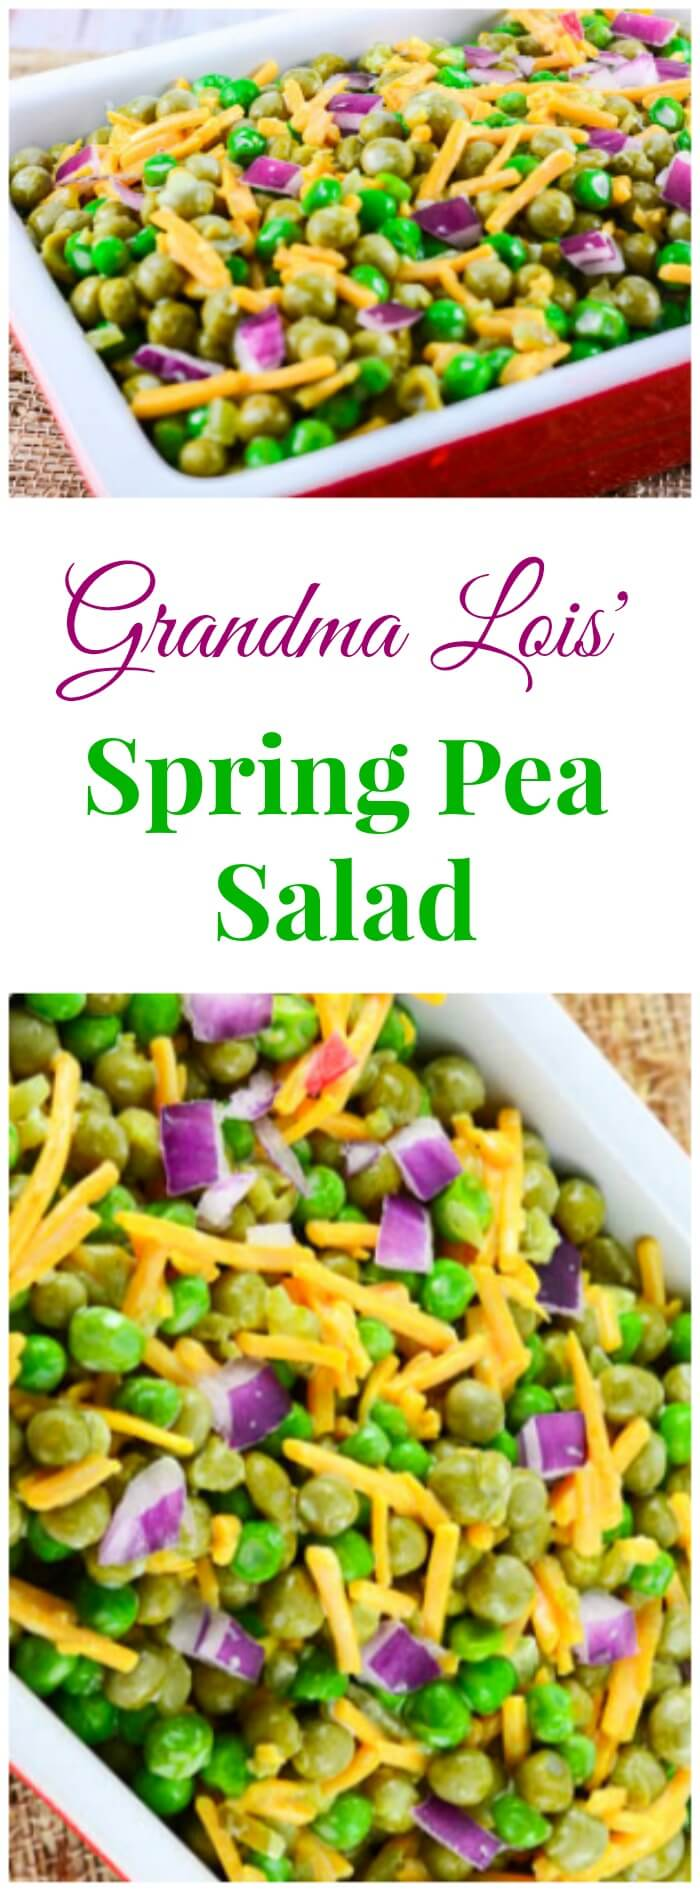 Grandma Lois' Spring Pea Salad is a perfect side dish for a family holiday dinner table for Easter or any time.